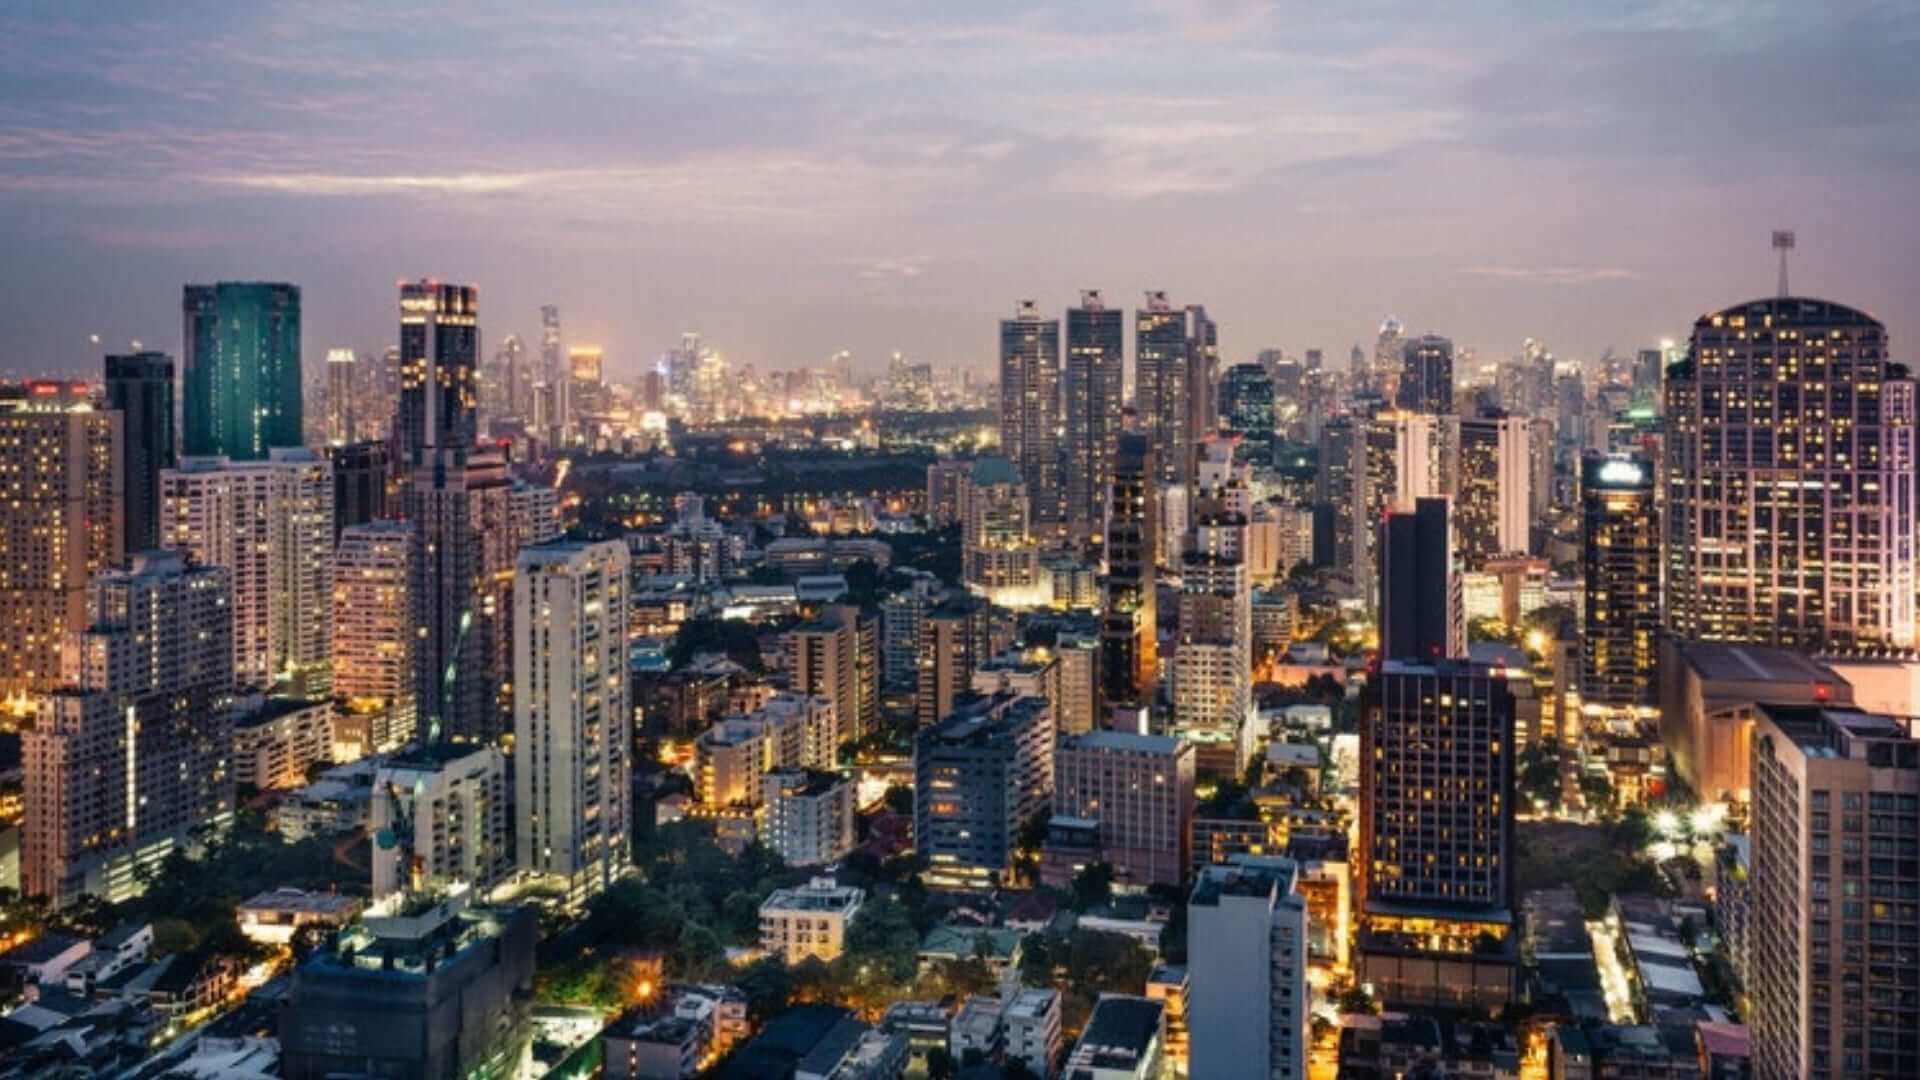 An overview of buildings in Bangkok in the evening.